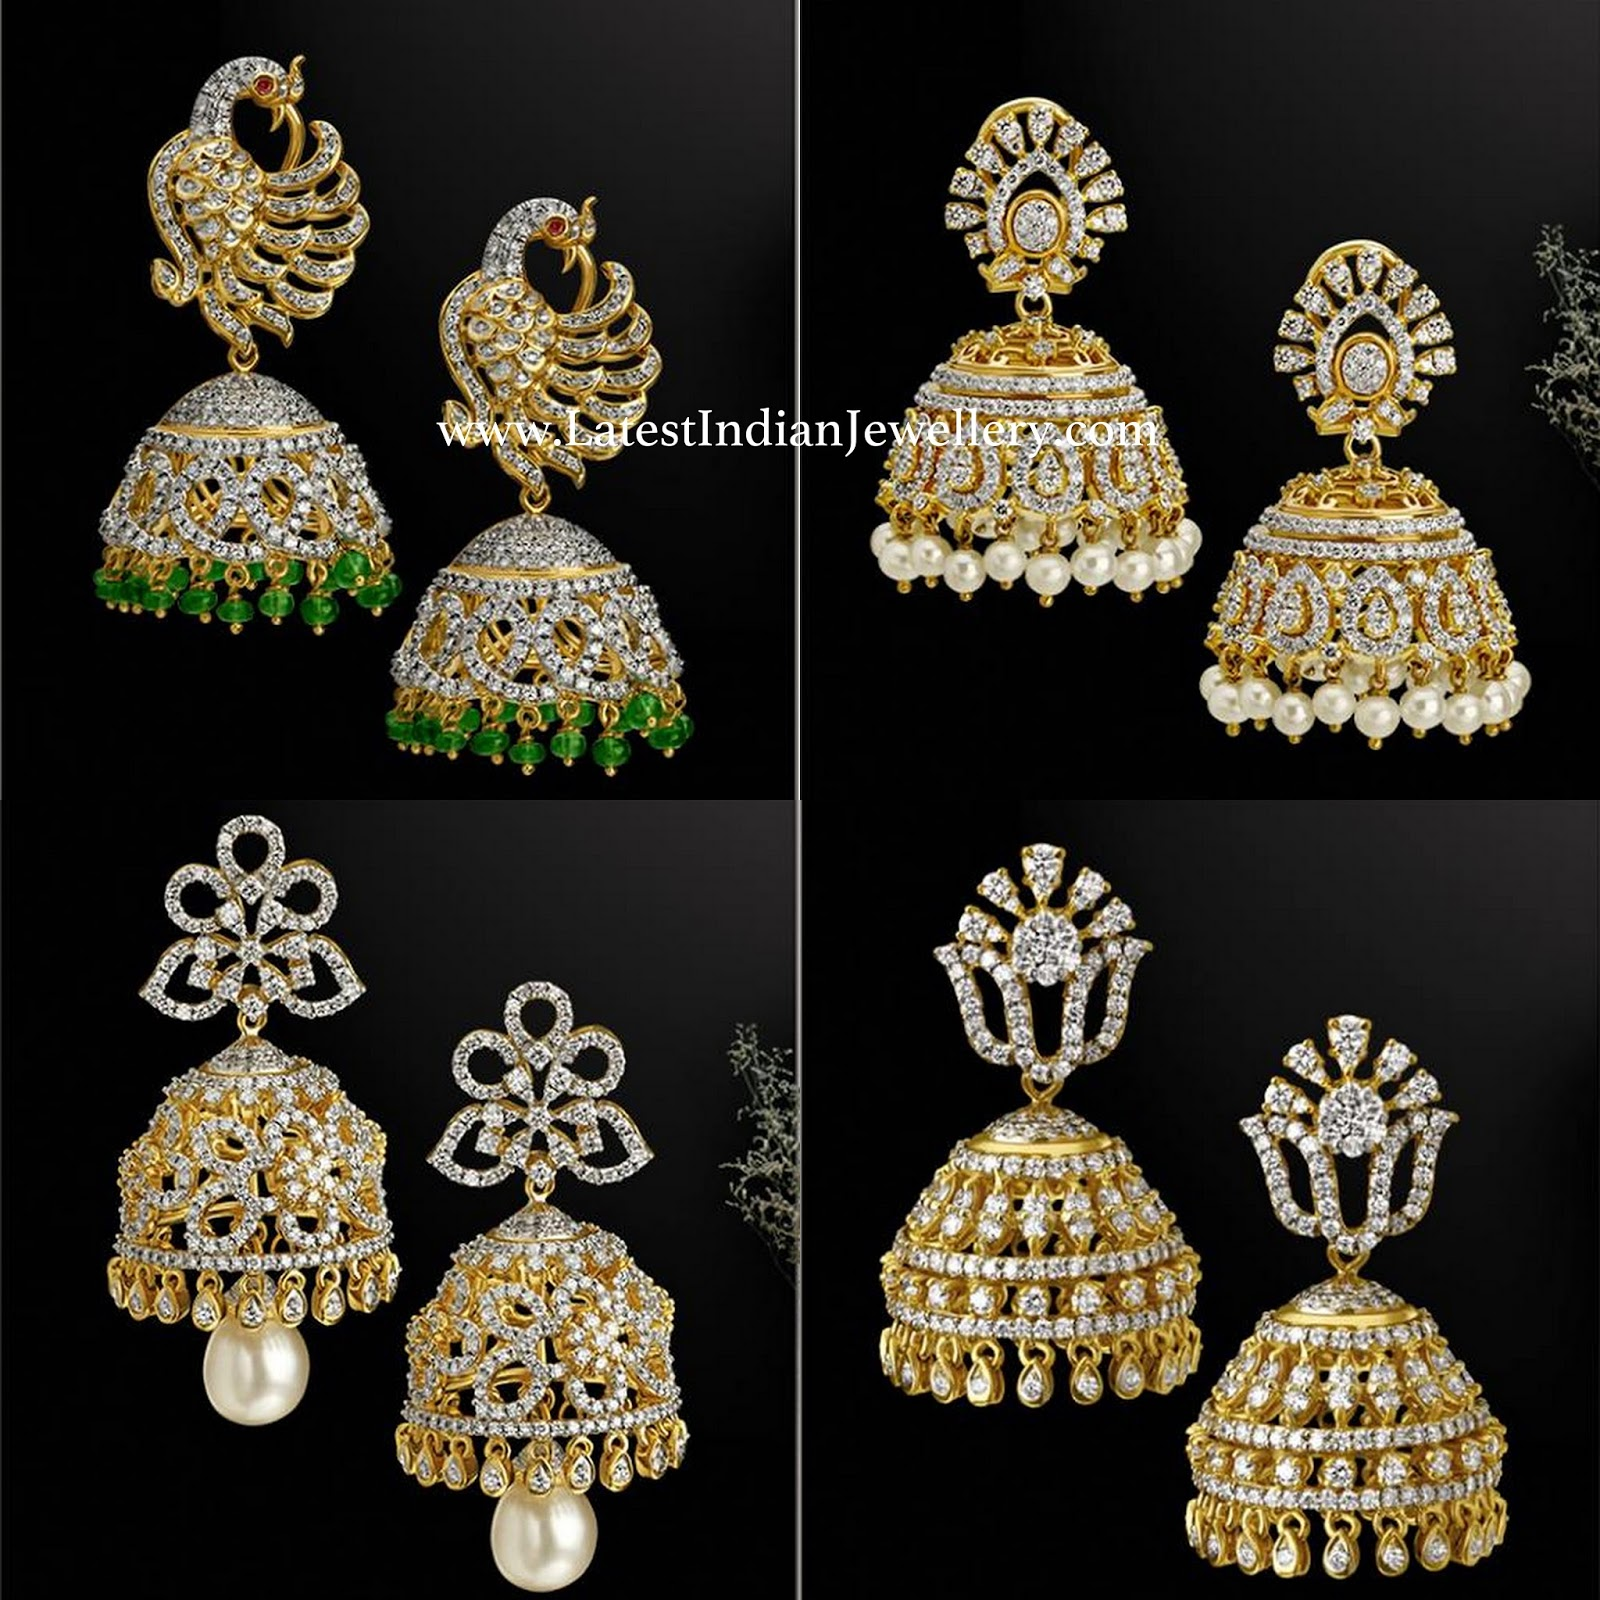 silver fairpurchase com product earrings jhumka diamond shape american bell shinning